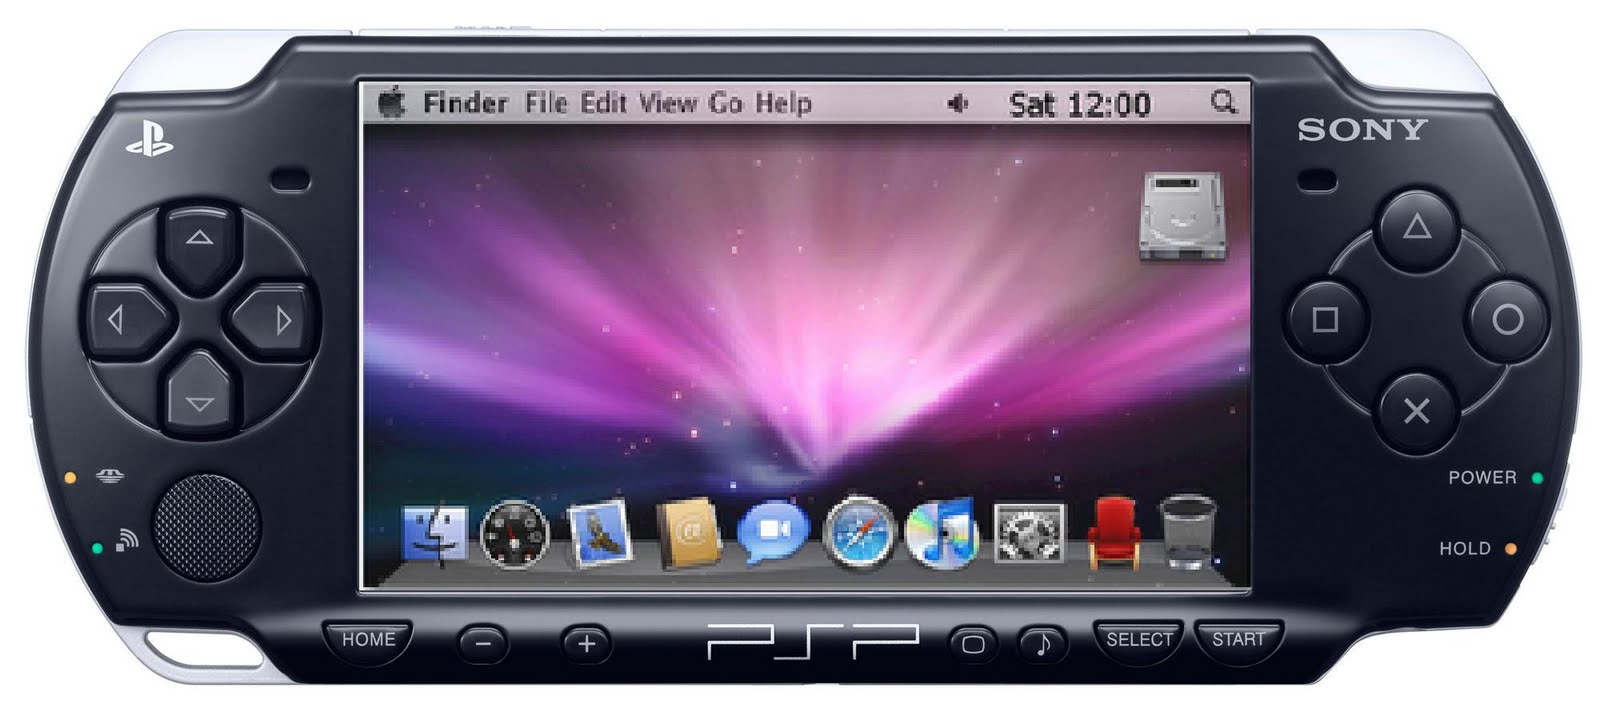 Free psp themes to download - PSP THEMES DOWNLOADABLE